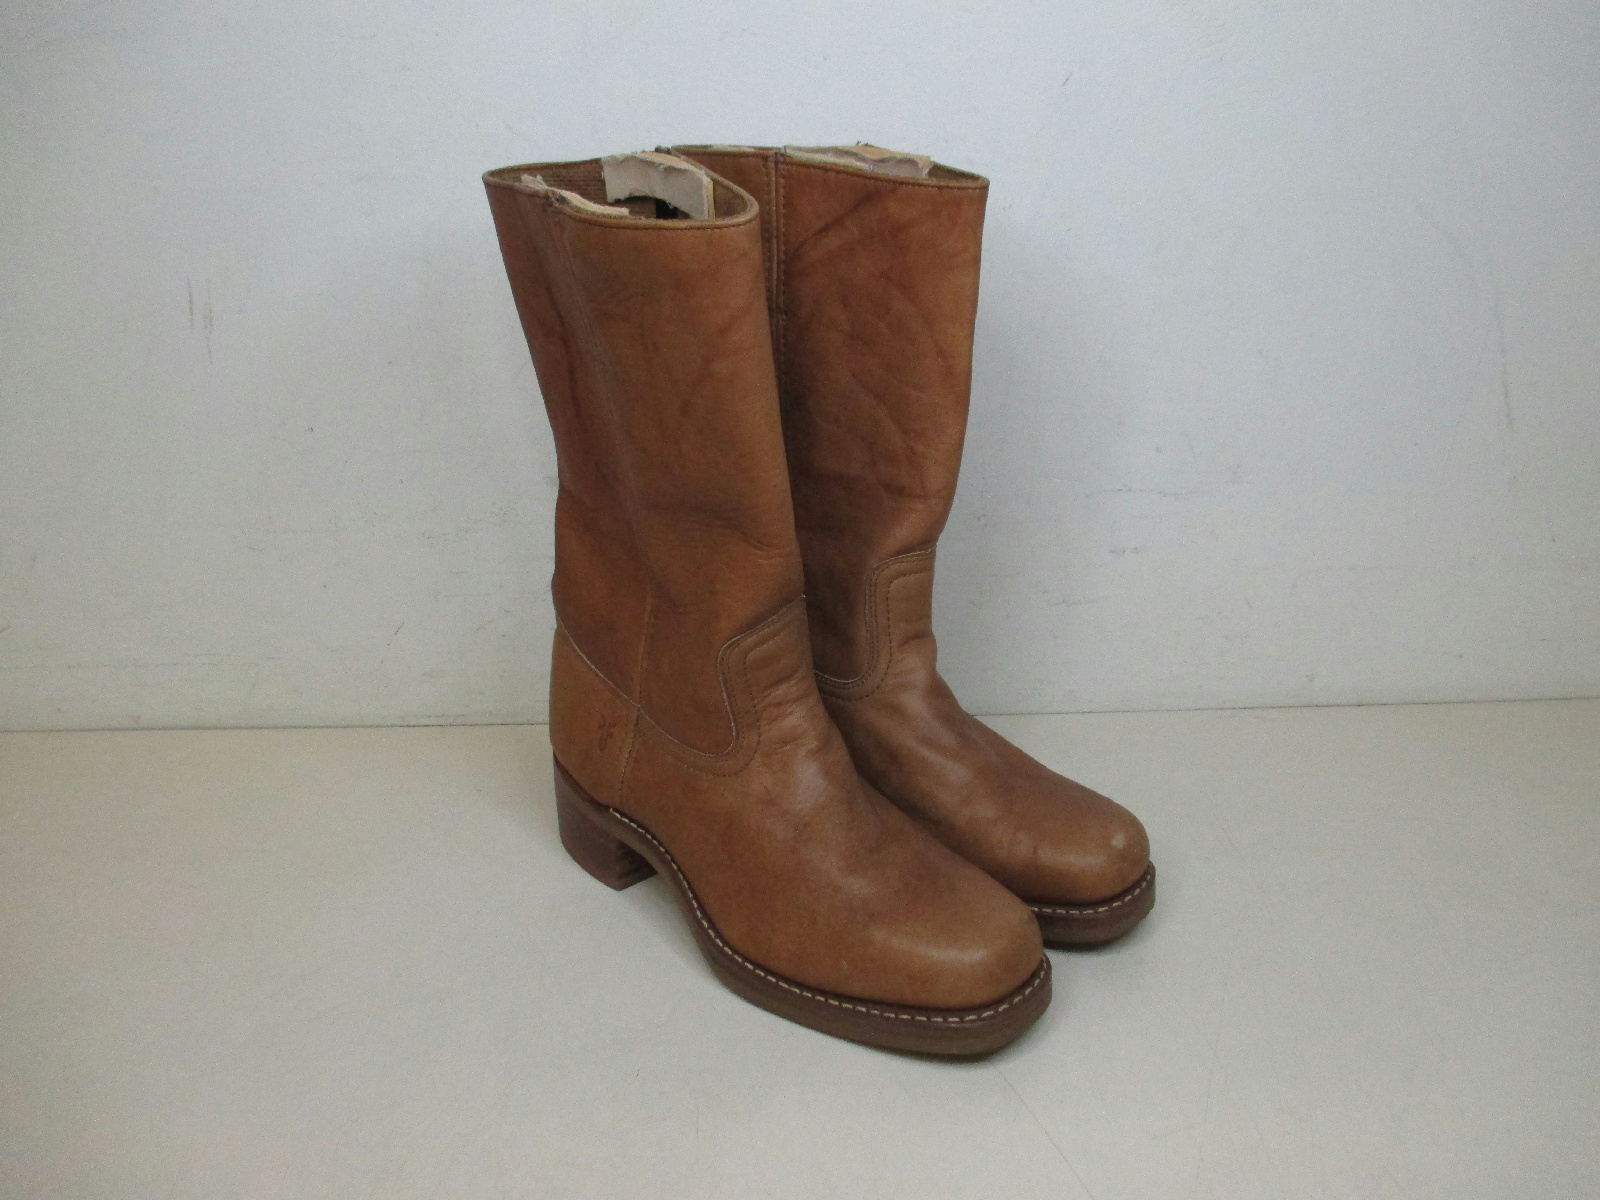 About frye brown leather square toe cowboy boots size 10 made in usa